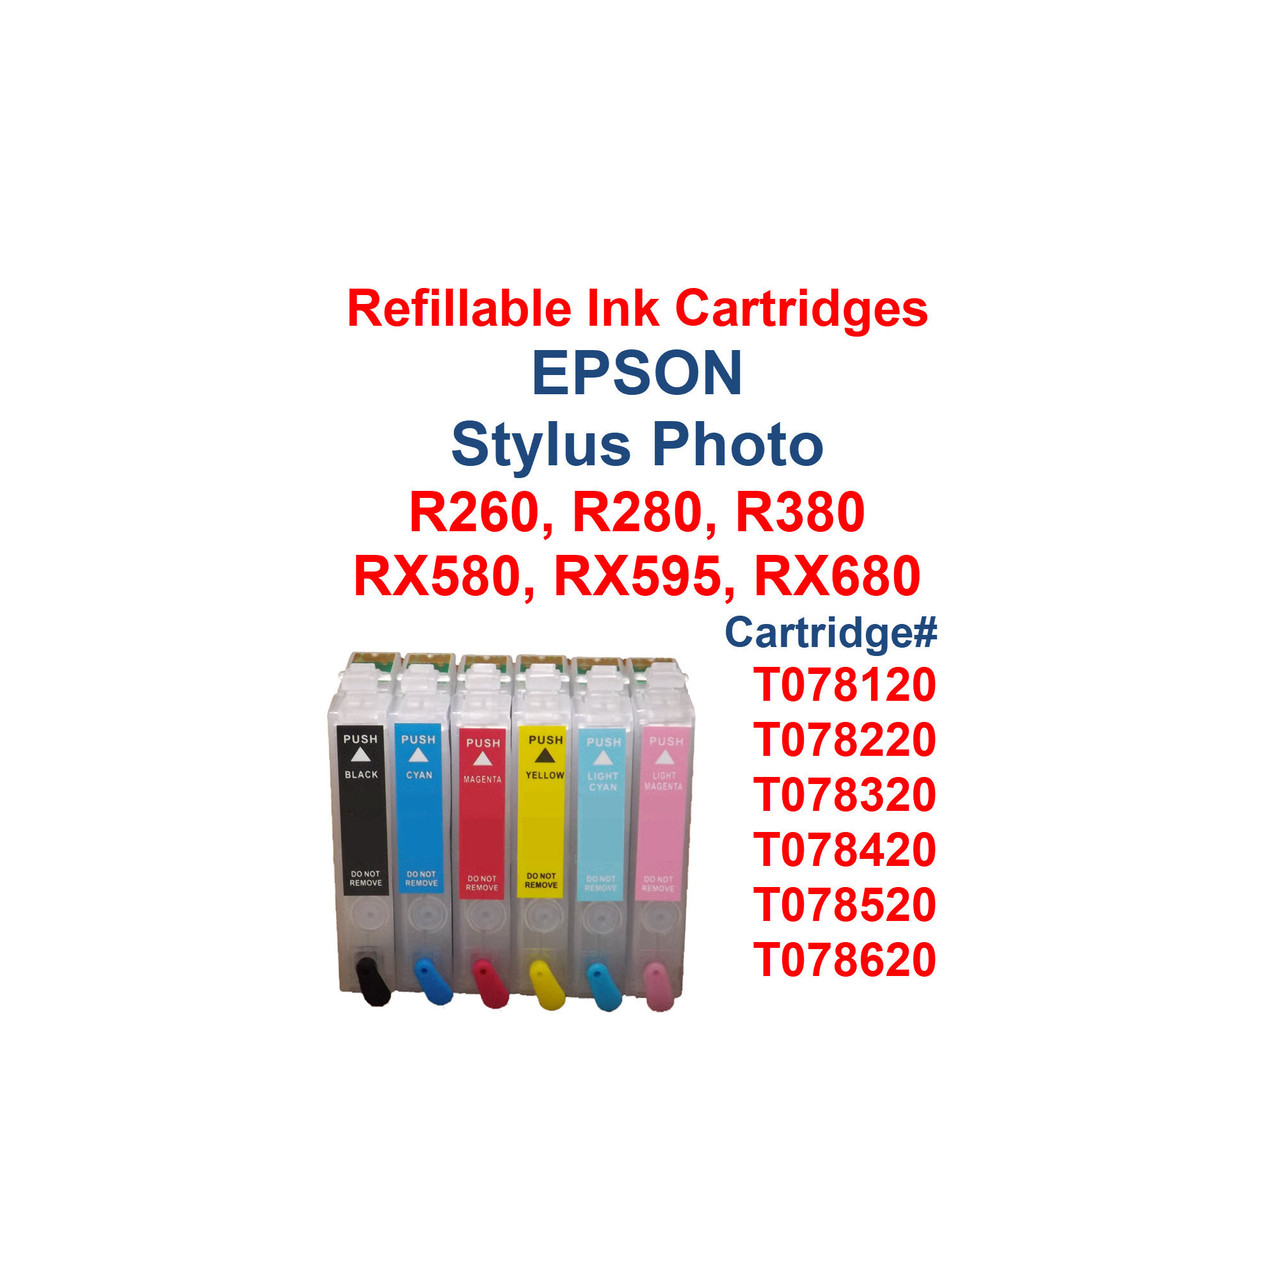 6- Refillable Ink Cartridges with auto reset chips for Epson Stylus Photo R260 R280 R380 RX580 RX595 RX680 printers  Cartridges work with printers: Epson Stylus Photo R260 Epson Stylus Photo R280 Epson Stylus Photo R380 Epson Stylus Photo RX580 Epson Stylus Photo RX595 Epson Stylus Photo RX680  Package includes  6 Refillable Ink Cartridges with auto reset chips installed   6 Syringes for filling cartridges  >>> Los Angeles same day delivery available (Contact us for pricing) <<<